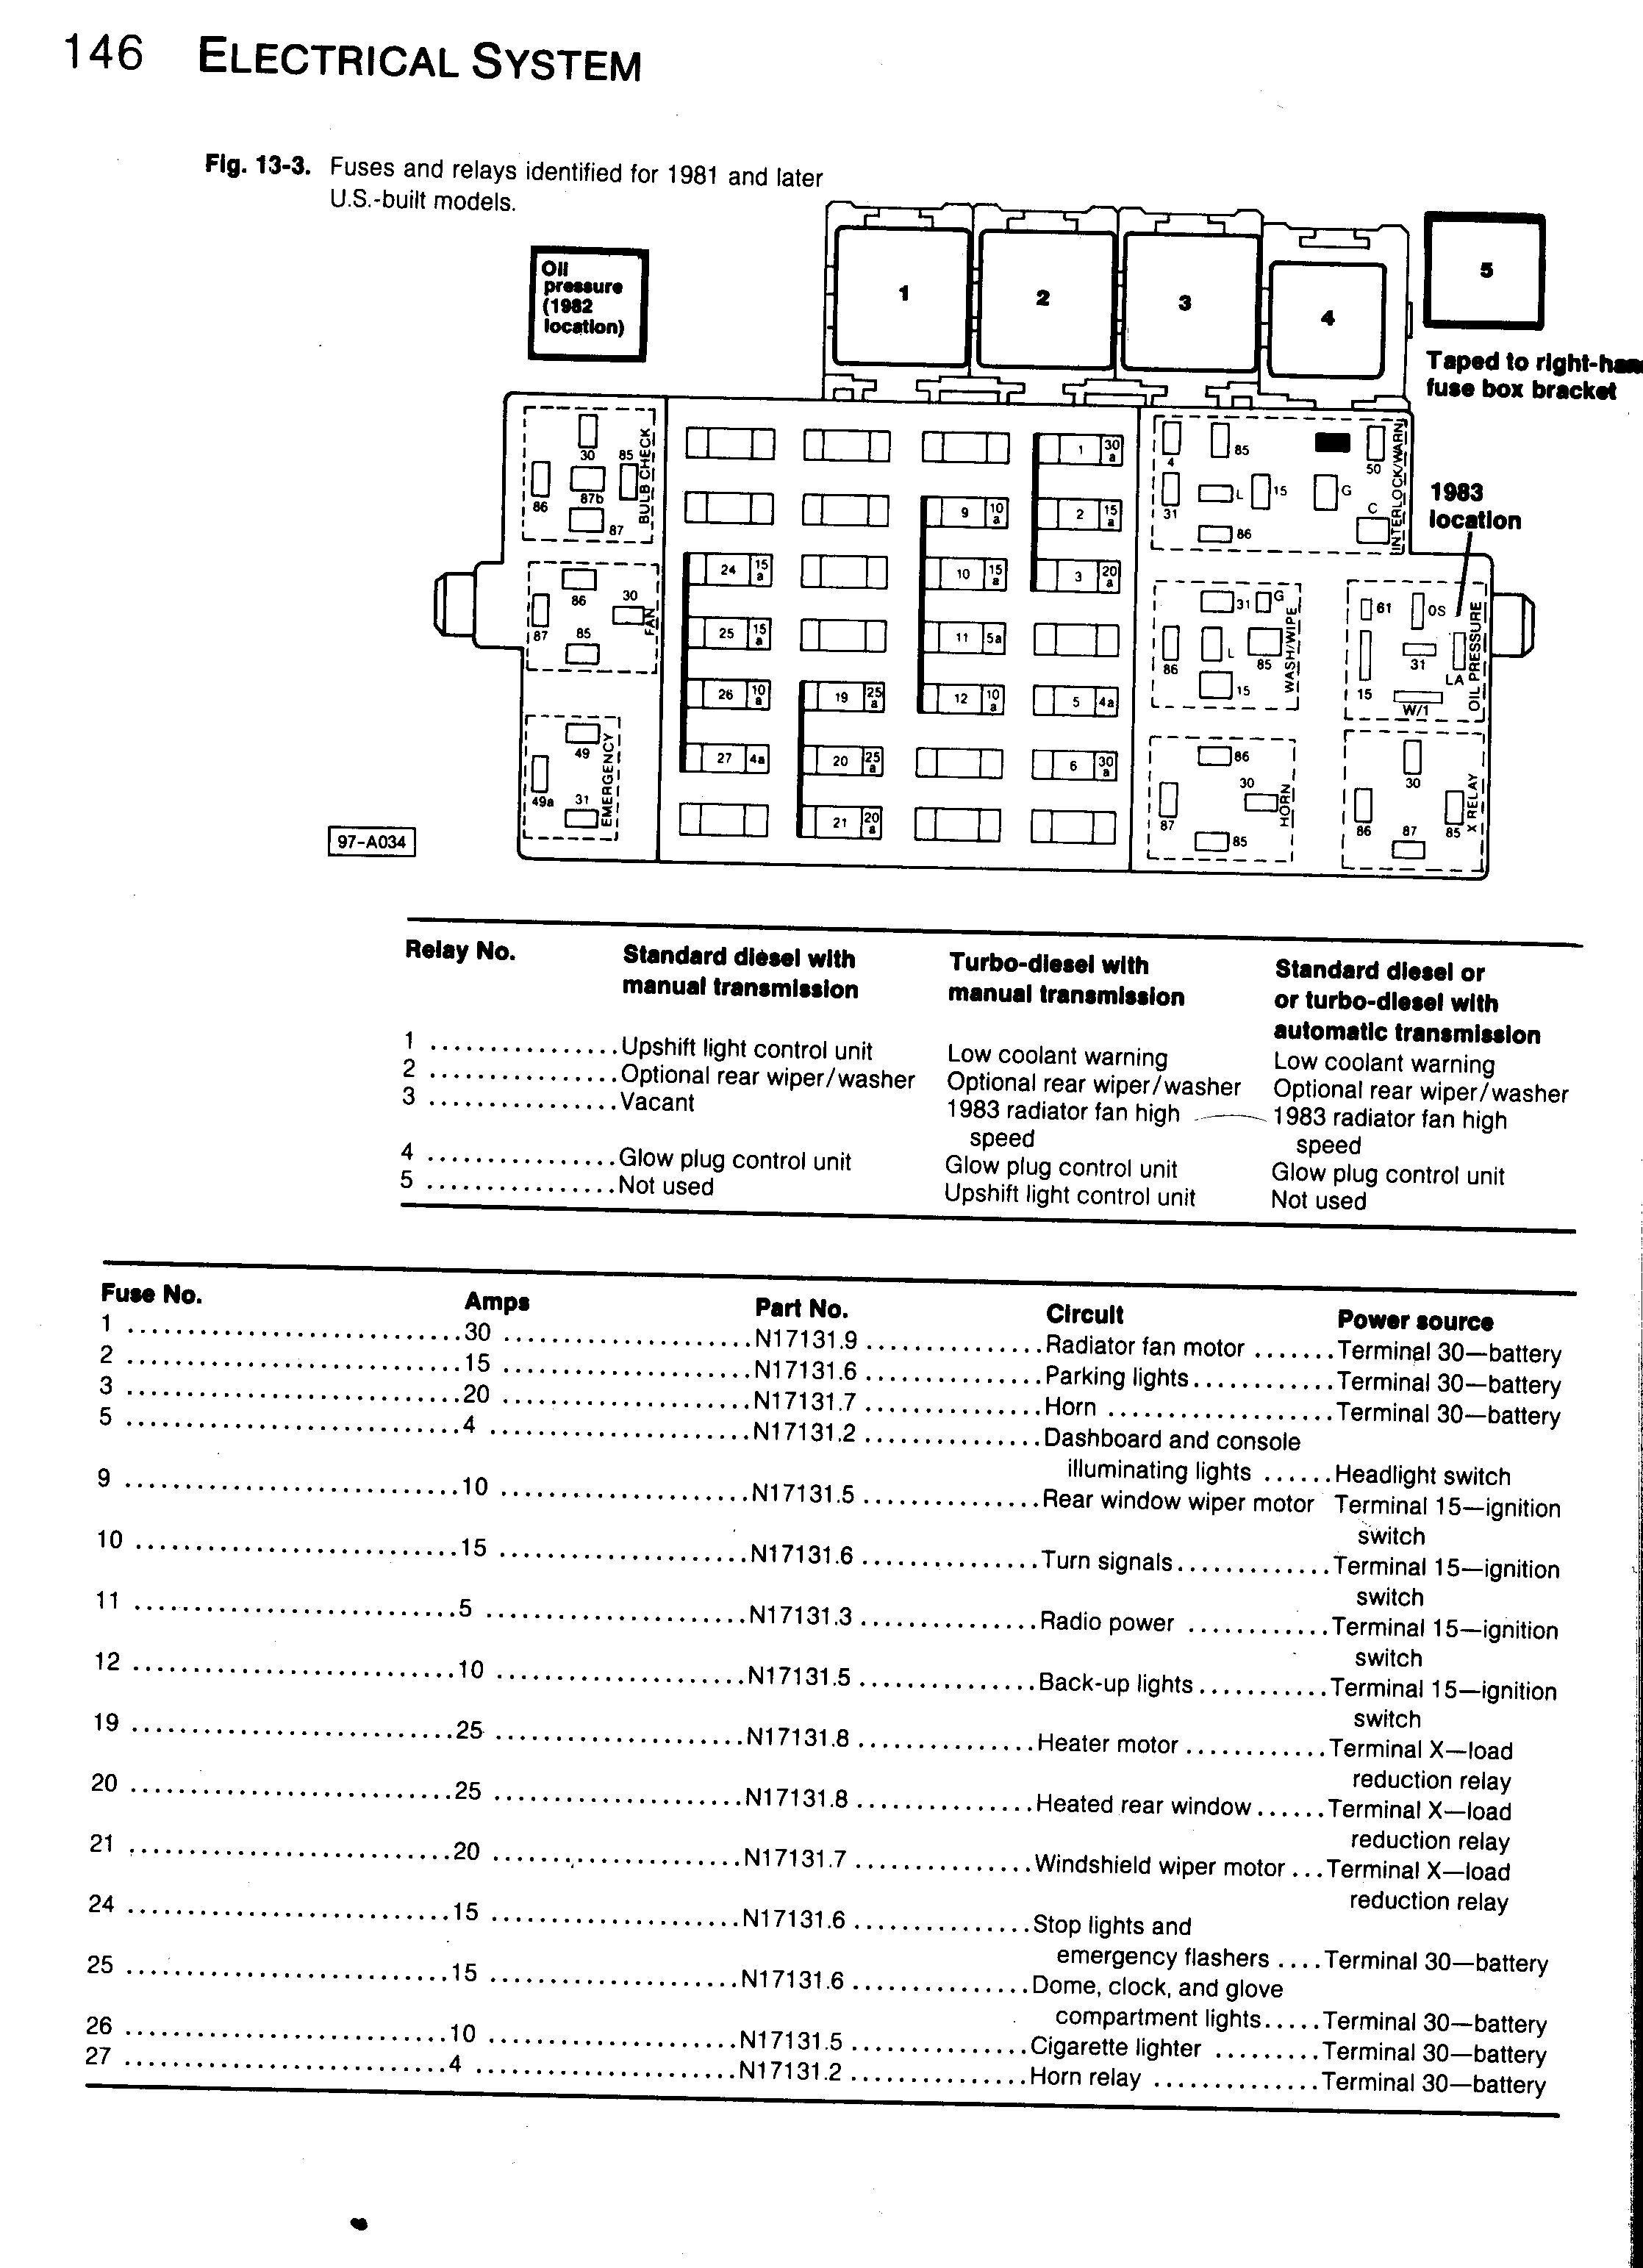 2000 Vw Jetta Fuse Box Card Manual Guide Wiring Diagram Chevy Malibu Images Gallery